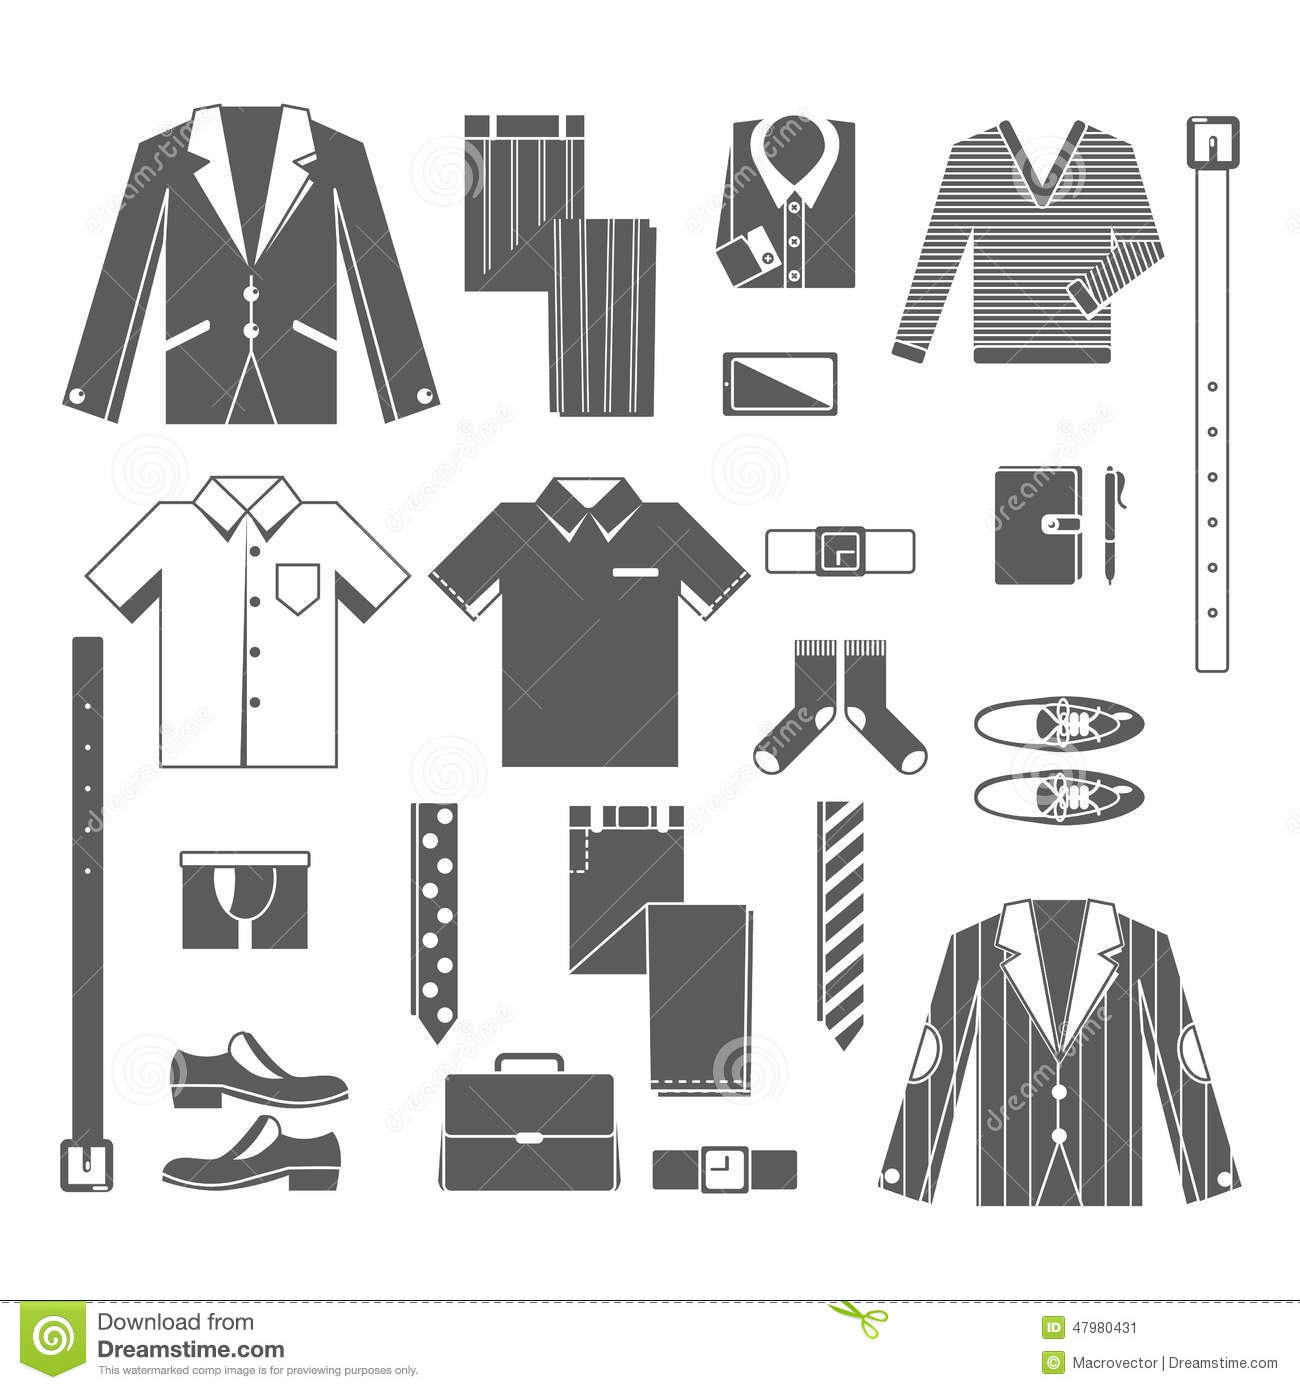 Business man clothes icons set stock vector illustration of male download business man clothes icons set stock vector illustration of male sale 47980431 ccuart Images